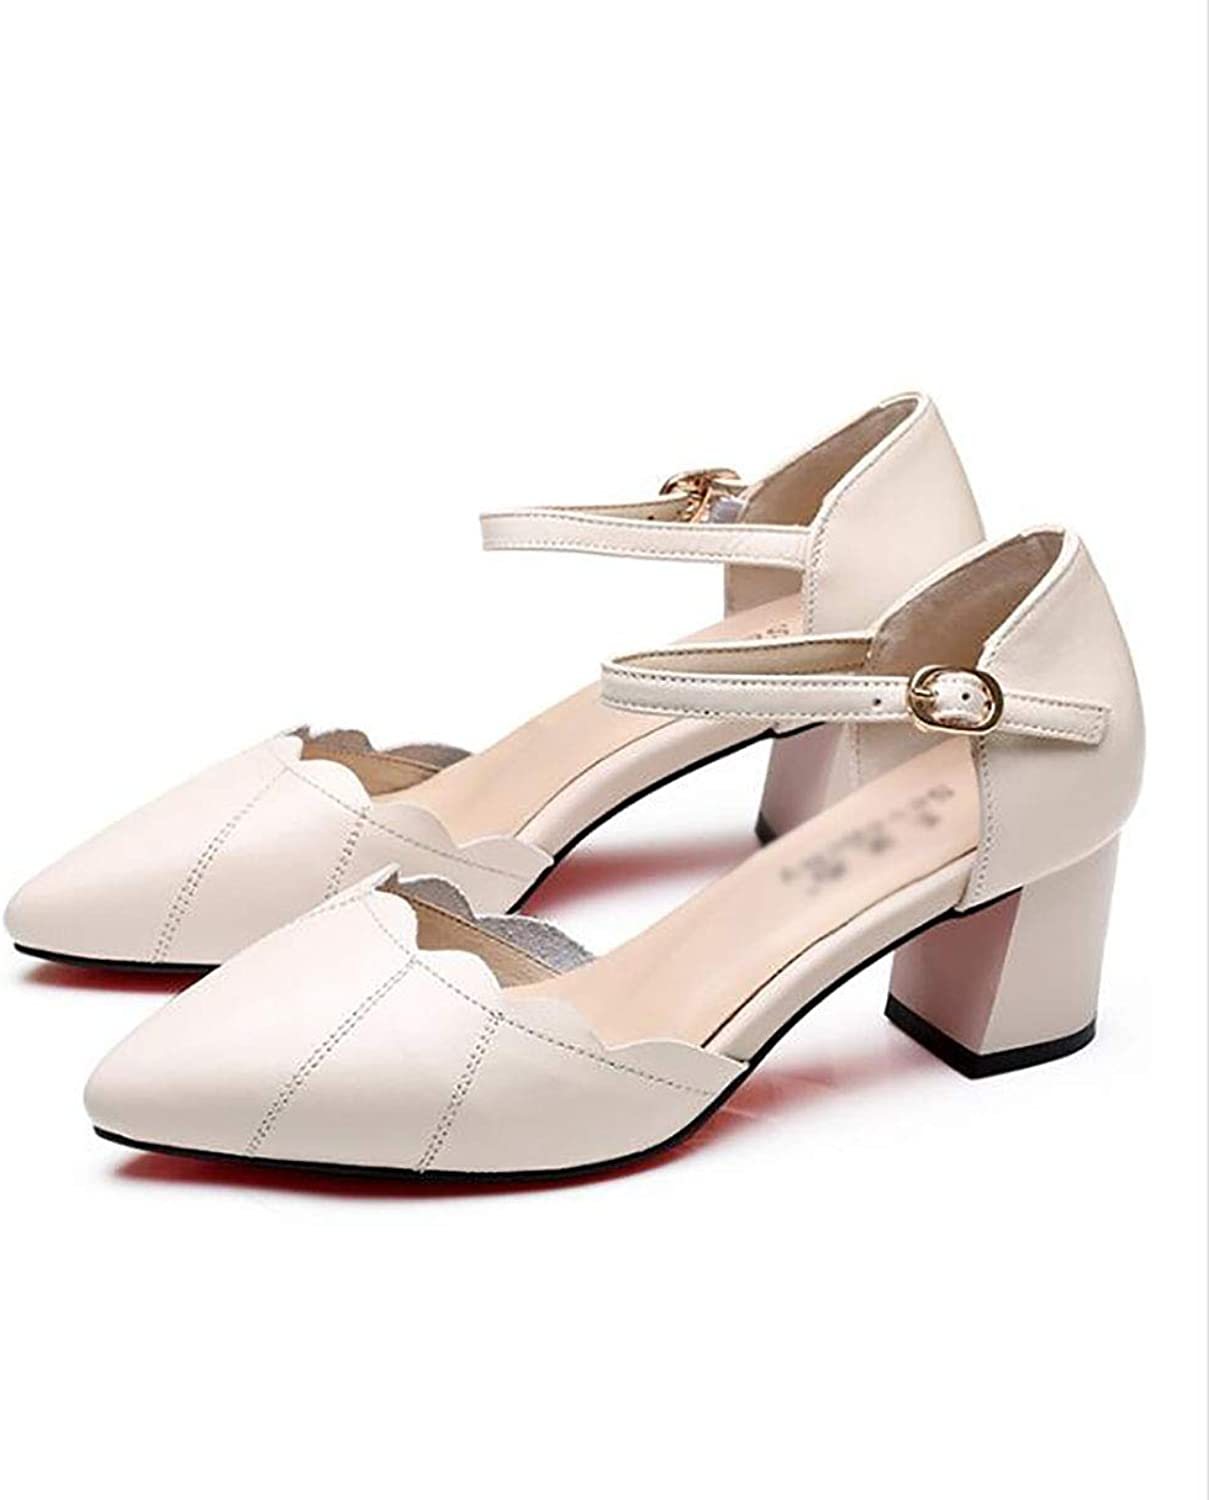 Women's shoes, Thick Heel, Middle Heel, one Buckle, Single shoes, Women's Thick, Comfortable shoes (color   A, Size   34)